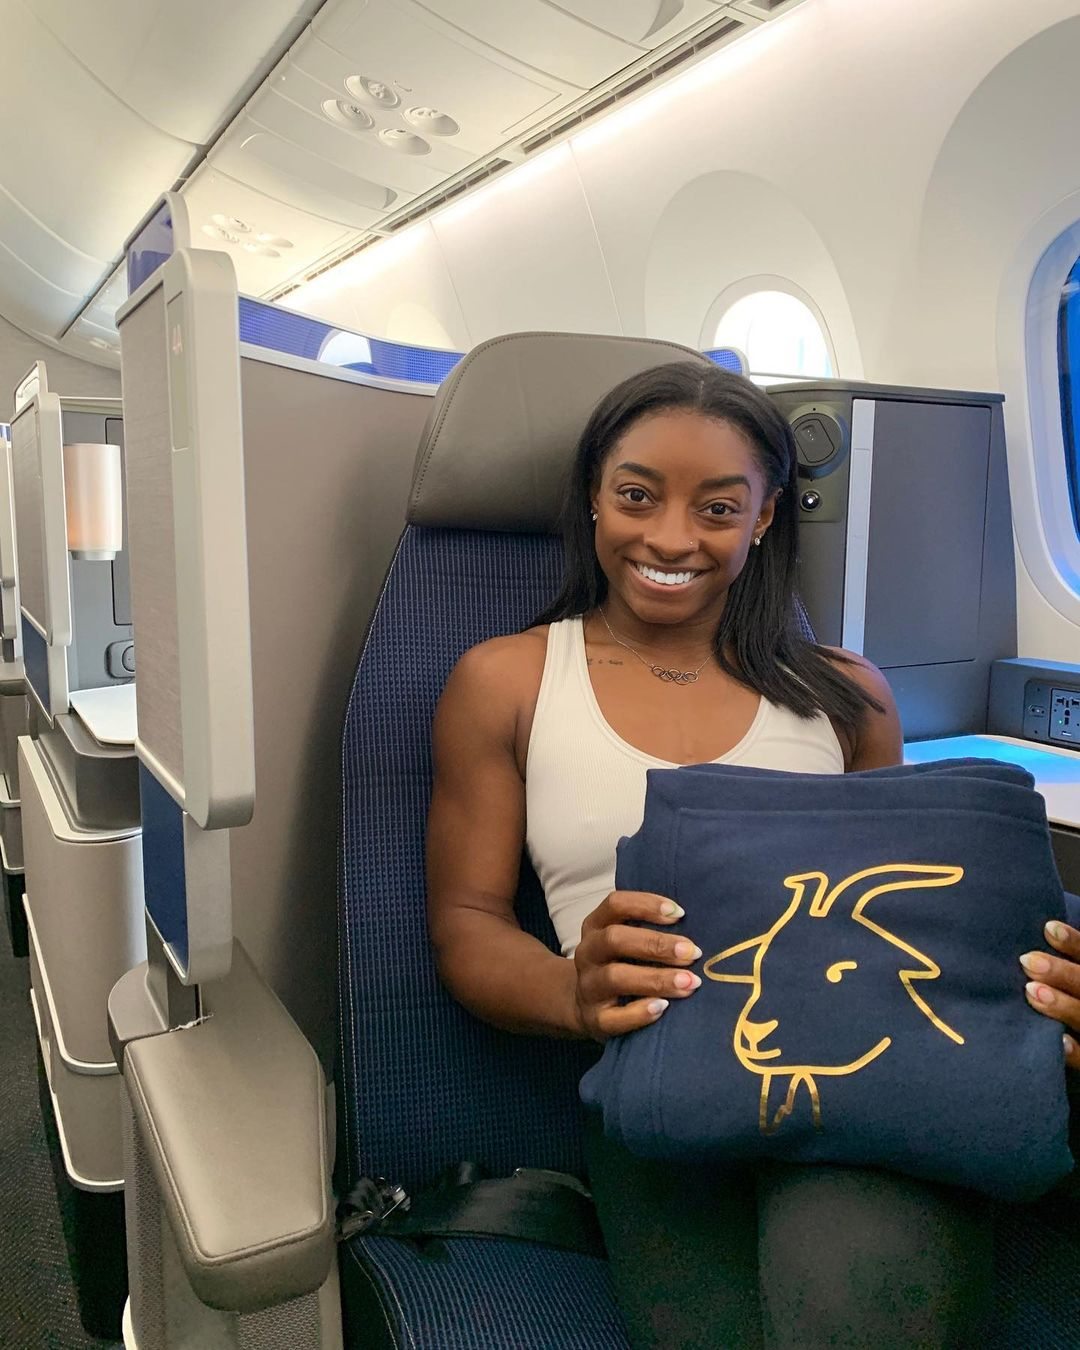 Simone Biles on the plane to Tokyo, holding a bag with a GOAT head emblem on it.